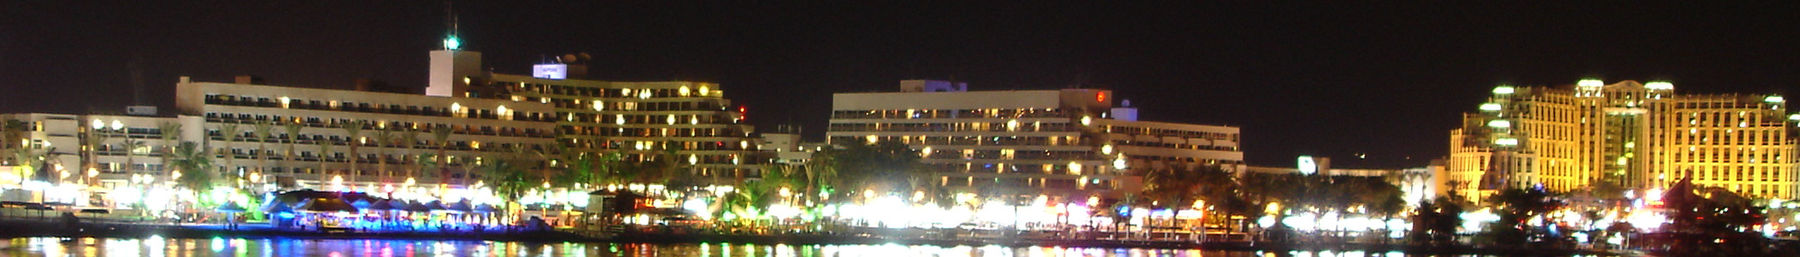 Eilat banner City lights.jpg